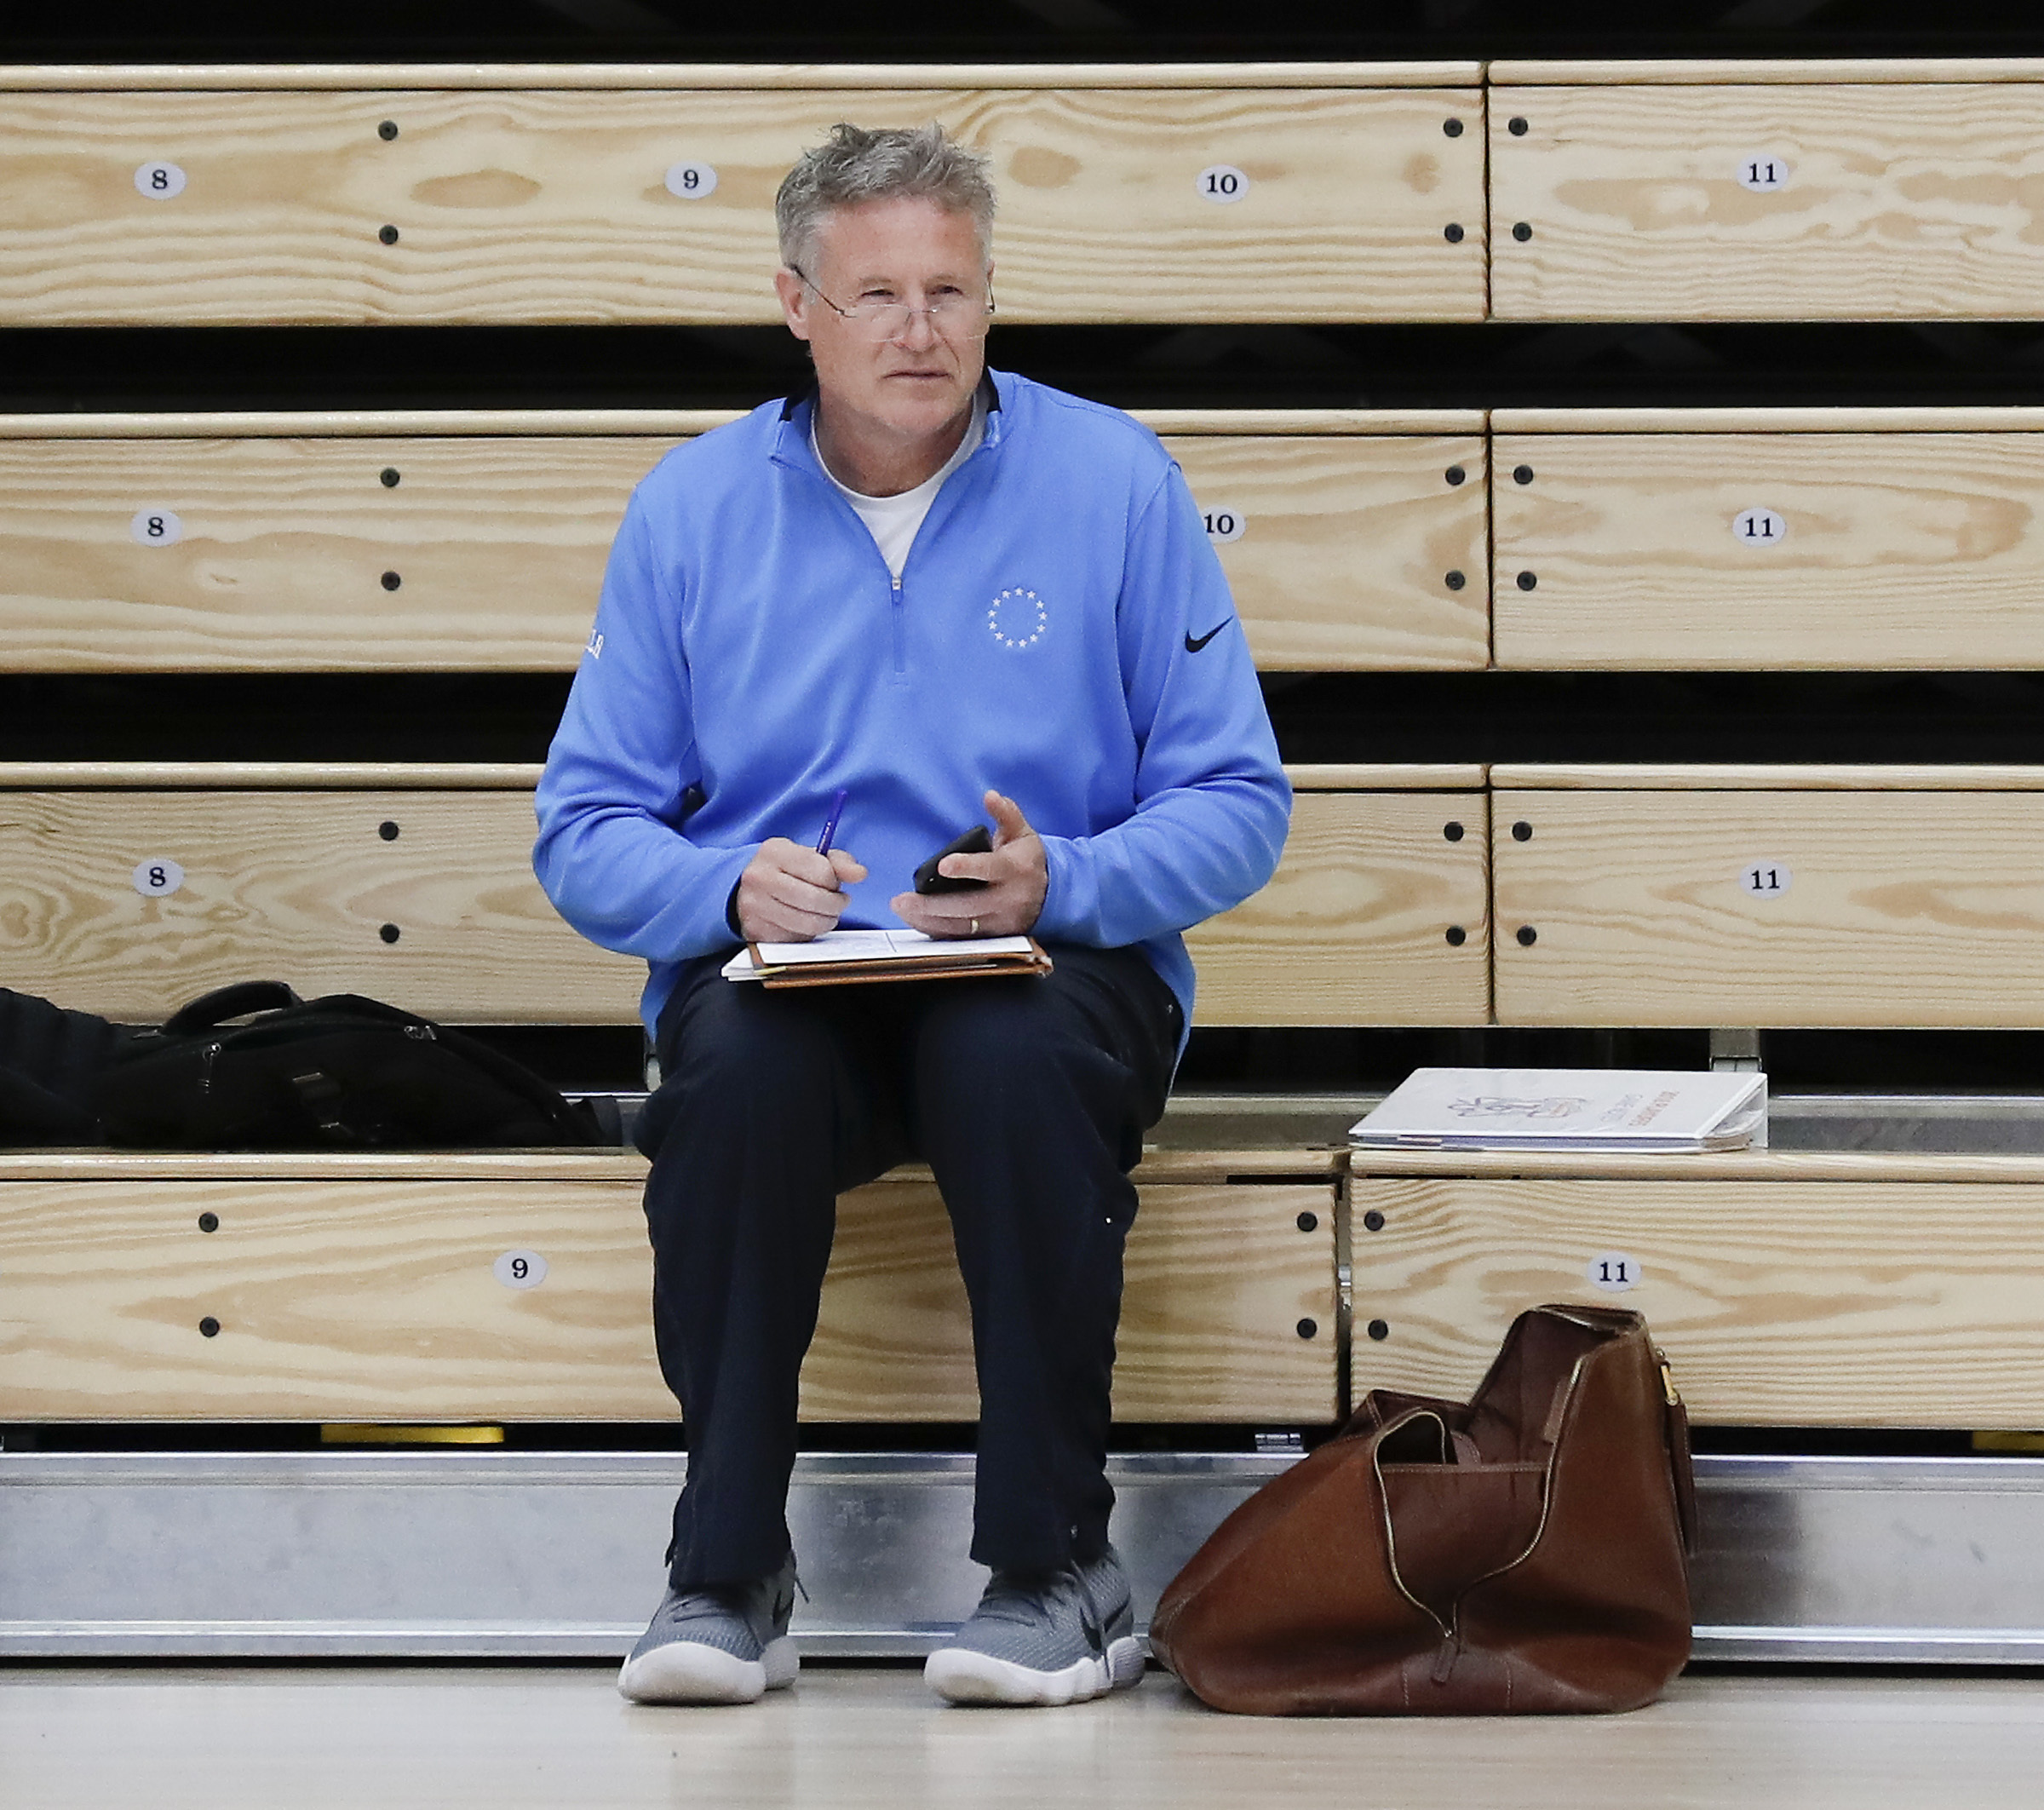 Sixers Head Coach Brett Brown sits with his notes in Lavietes Pavilion at Harvard University before his team practiced on Tuesday, May 1, 2018. YONG KIM / Staff Photographer